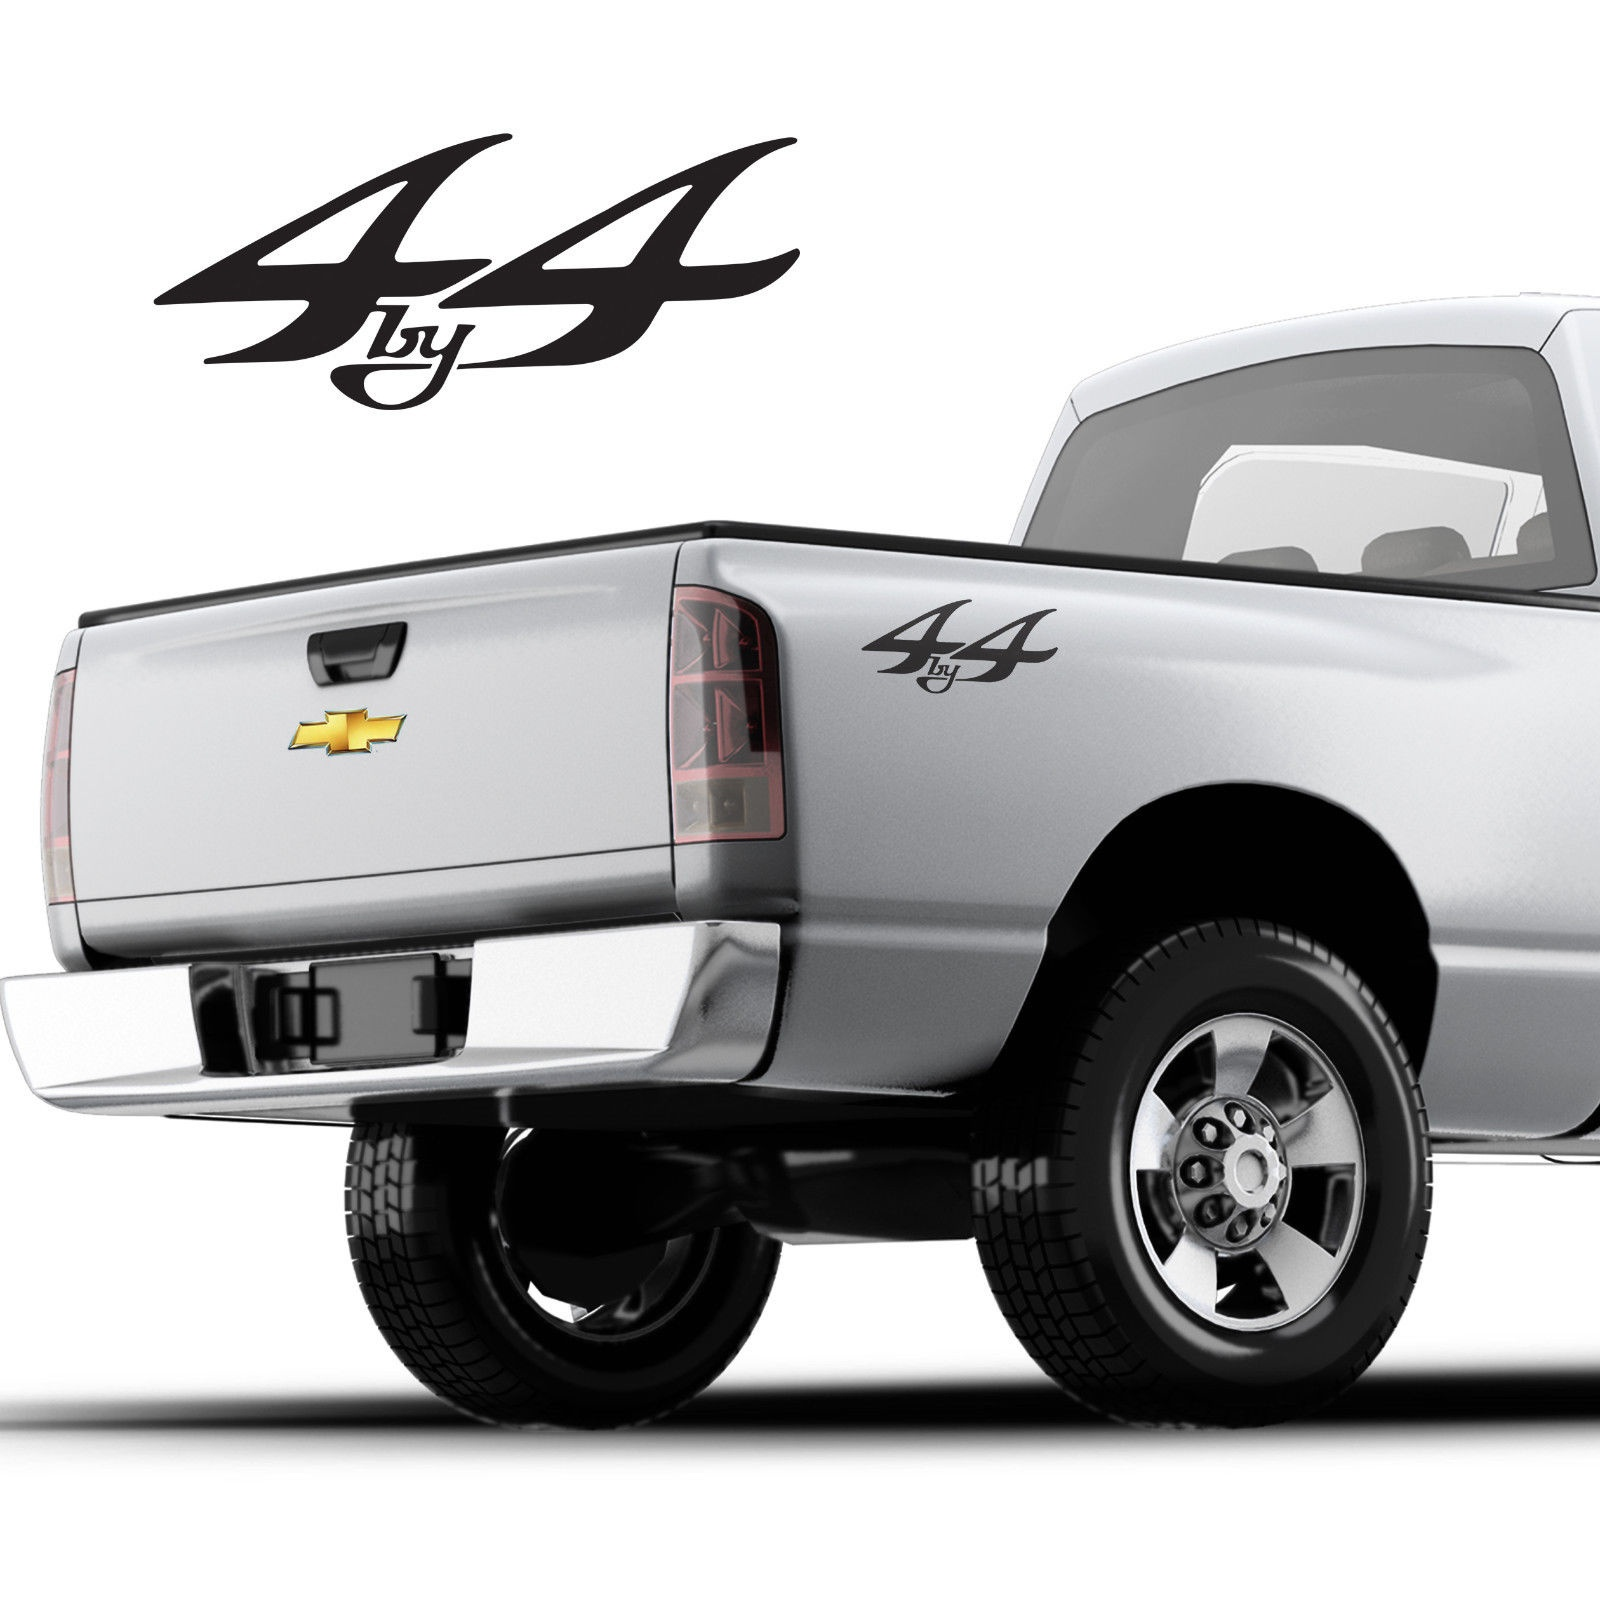 Ford Offroad Truck Accessories Universal 4x4 Decal Stickers 2 4x4 Decals Auto Parts And Vehicles Car Truck Graphics Decals Magenta Cl